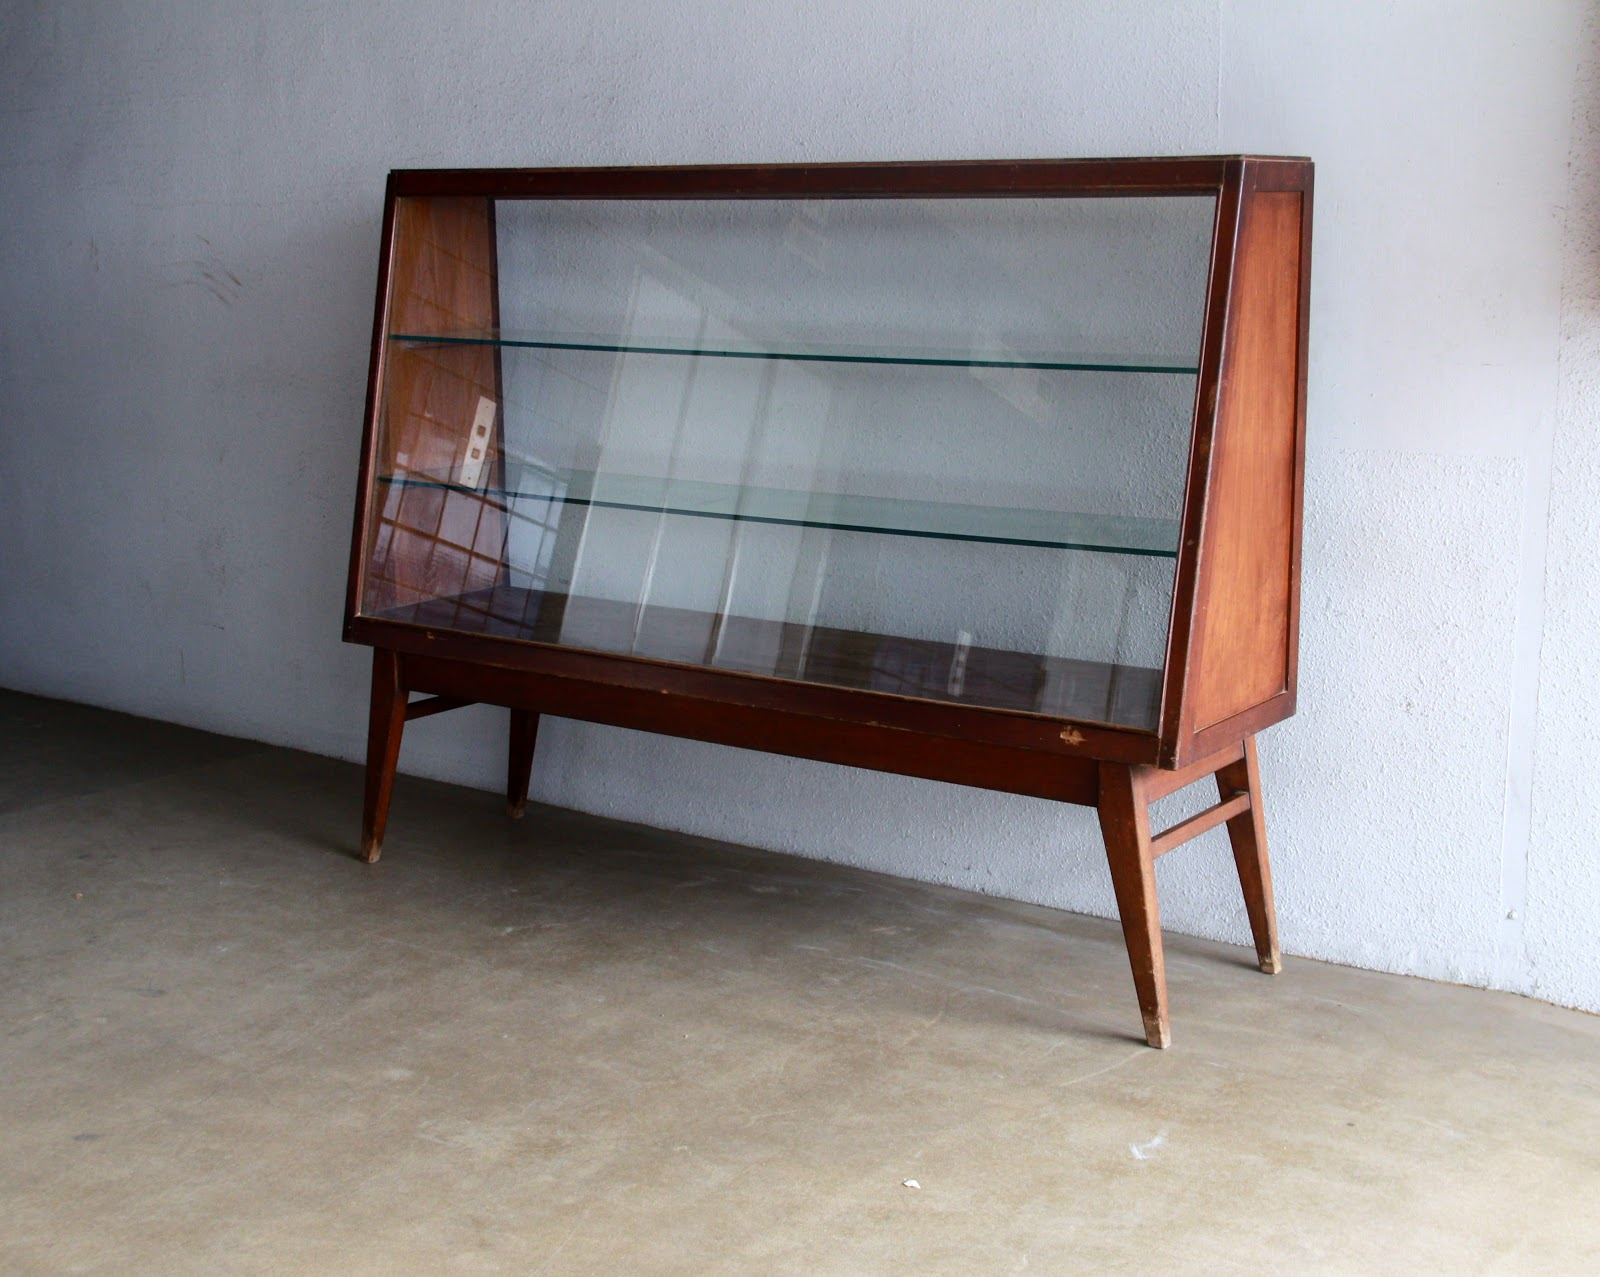 Retro Sofa Singapore Vintage Showcases And Display Cabinets Ashley Furniture